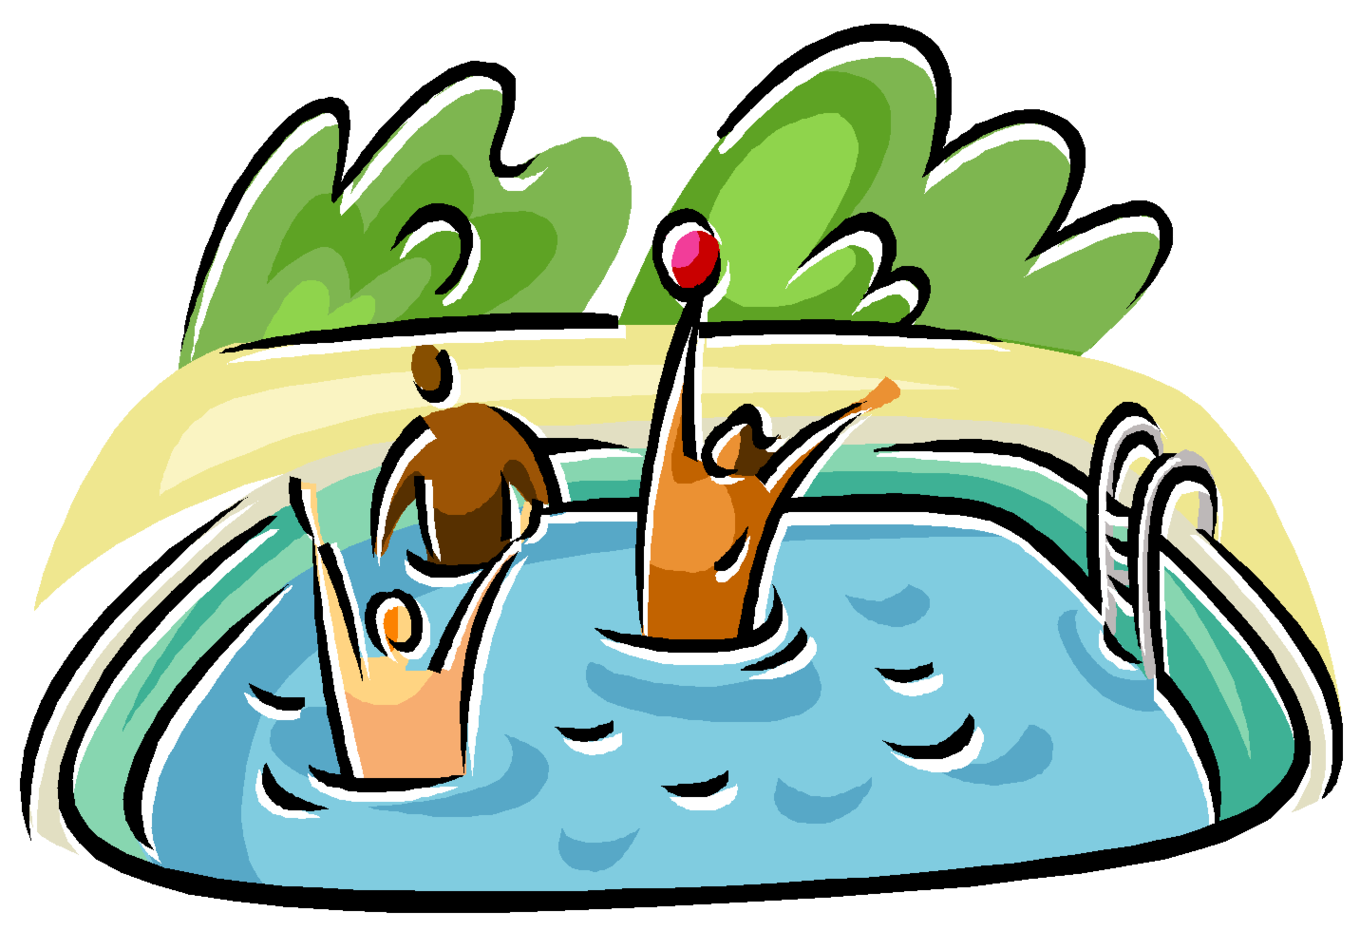 Clip Art Pool Clipart swimming pool clip-Clip Art Pool Clipart swimming pool clip art evolution design clipart free  to use download the-14